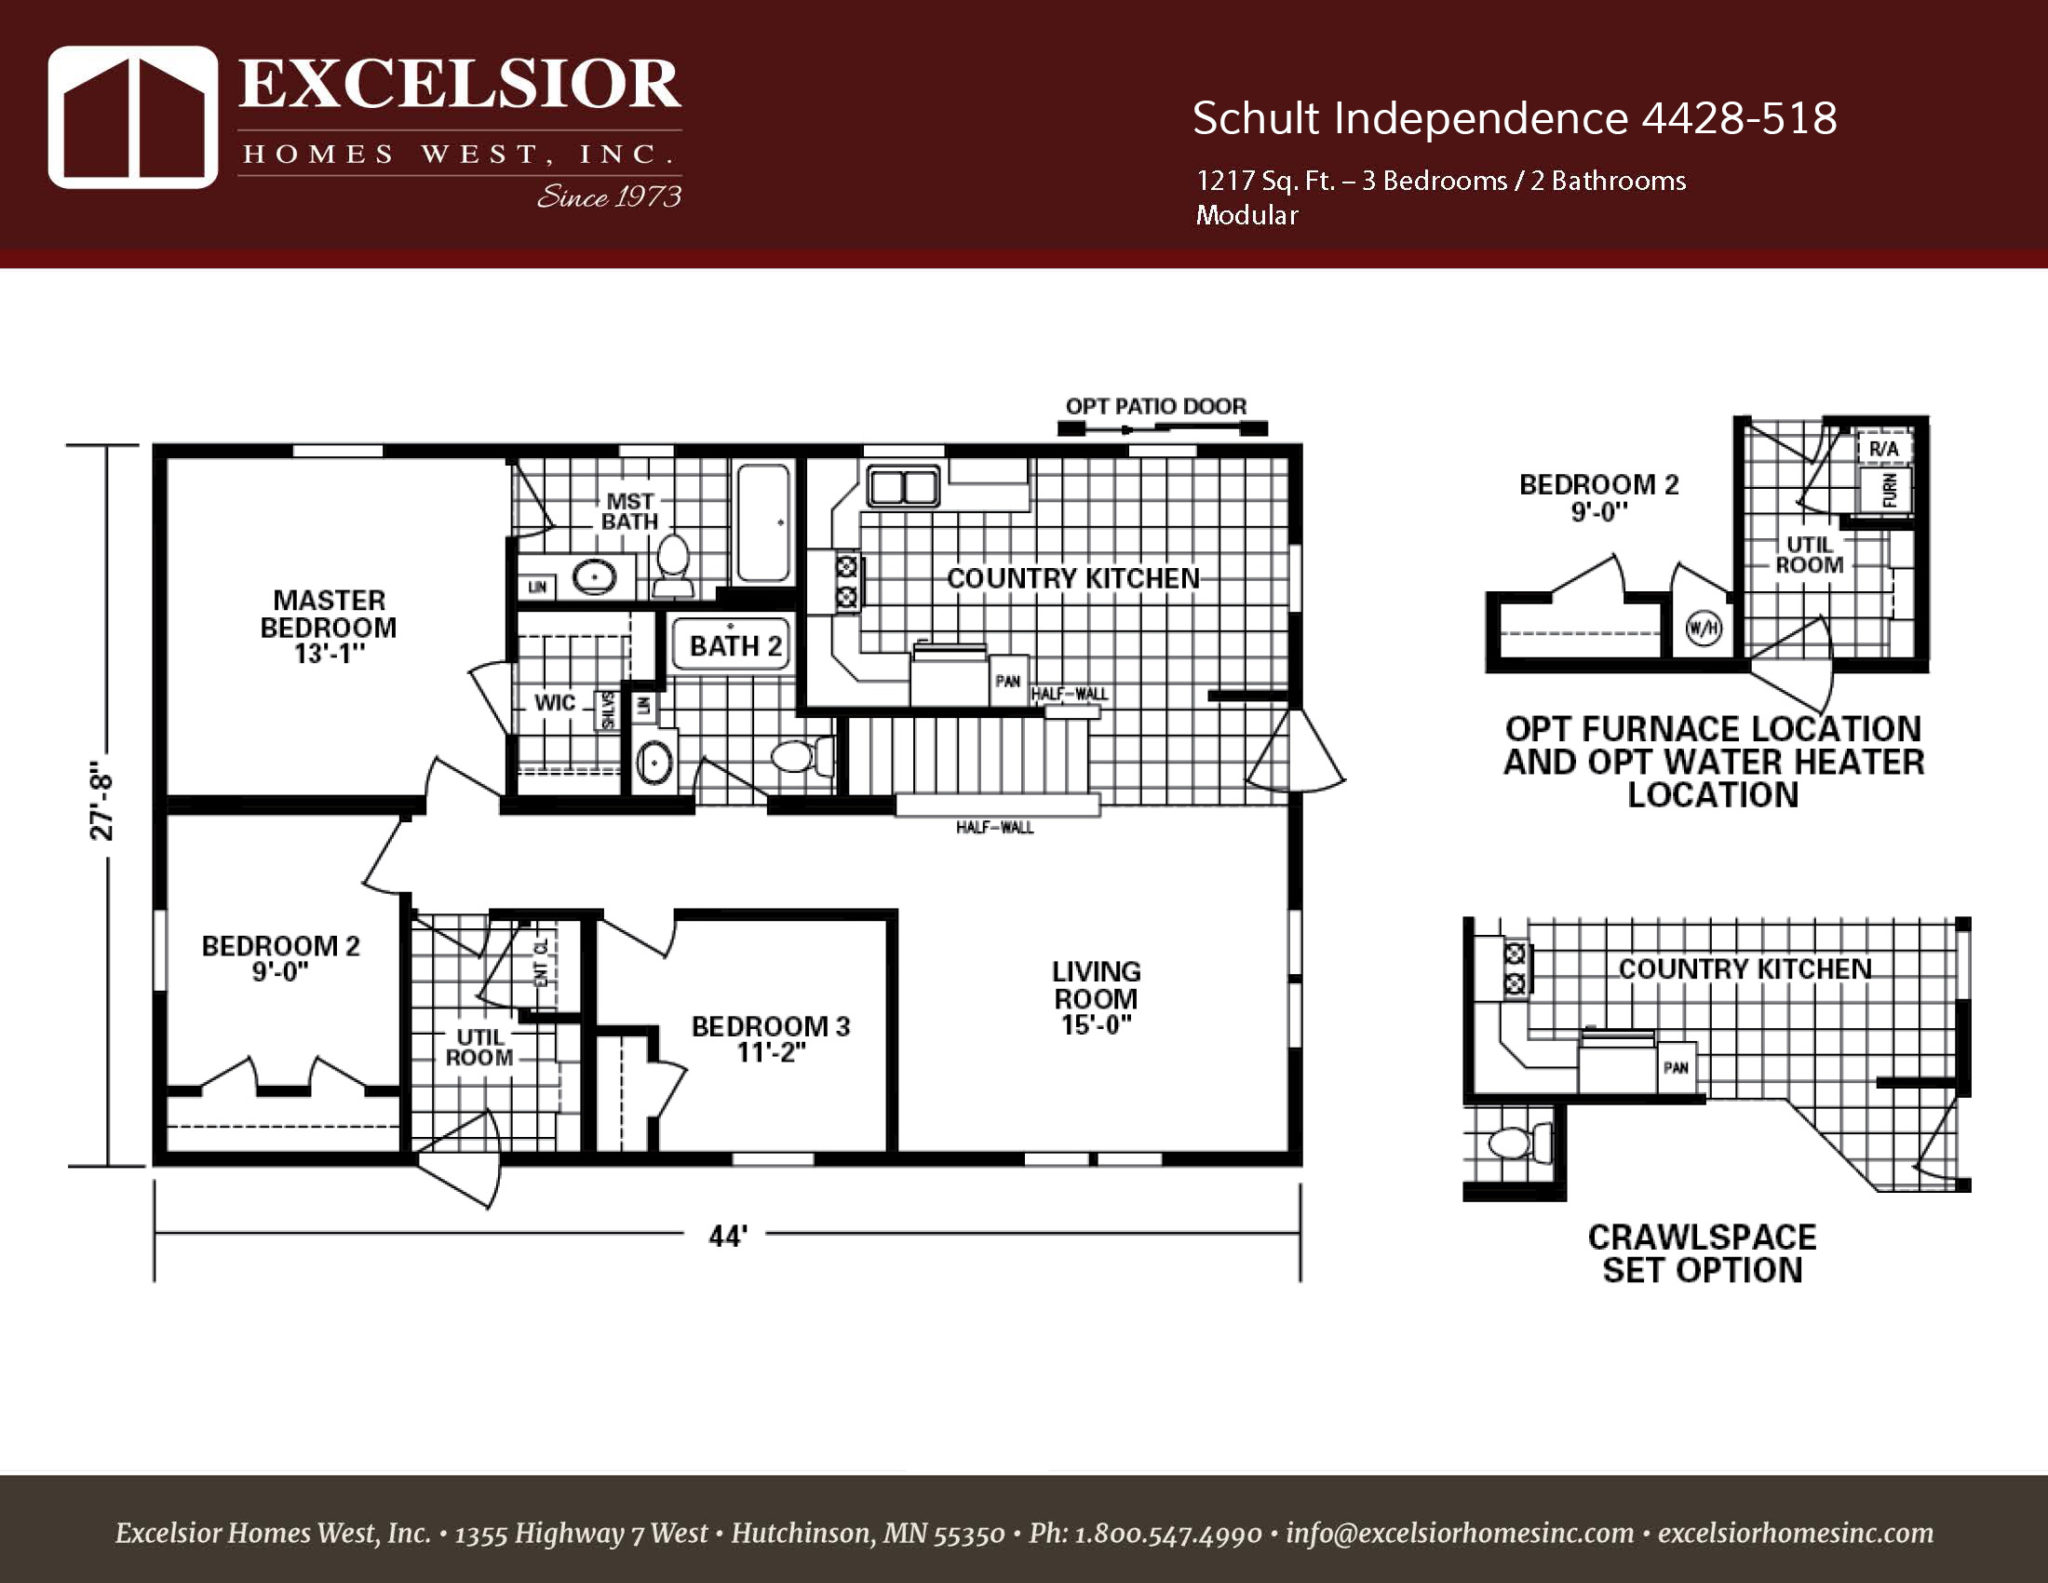 Build Kitchen Cabinet Doors Schult Independence 518 Home Plan | Excelsior Homes West, Inc.